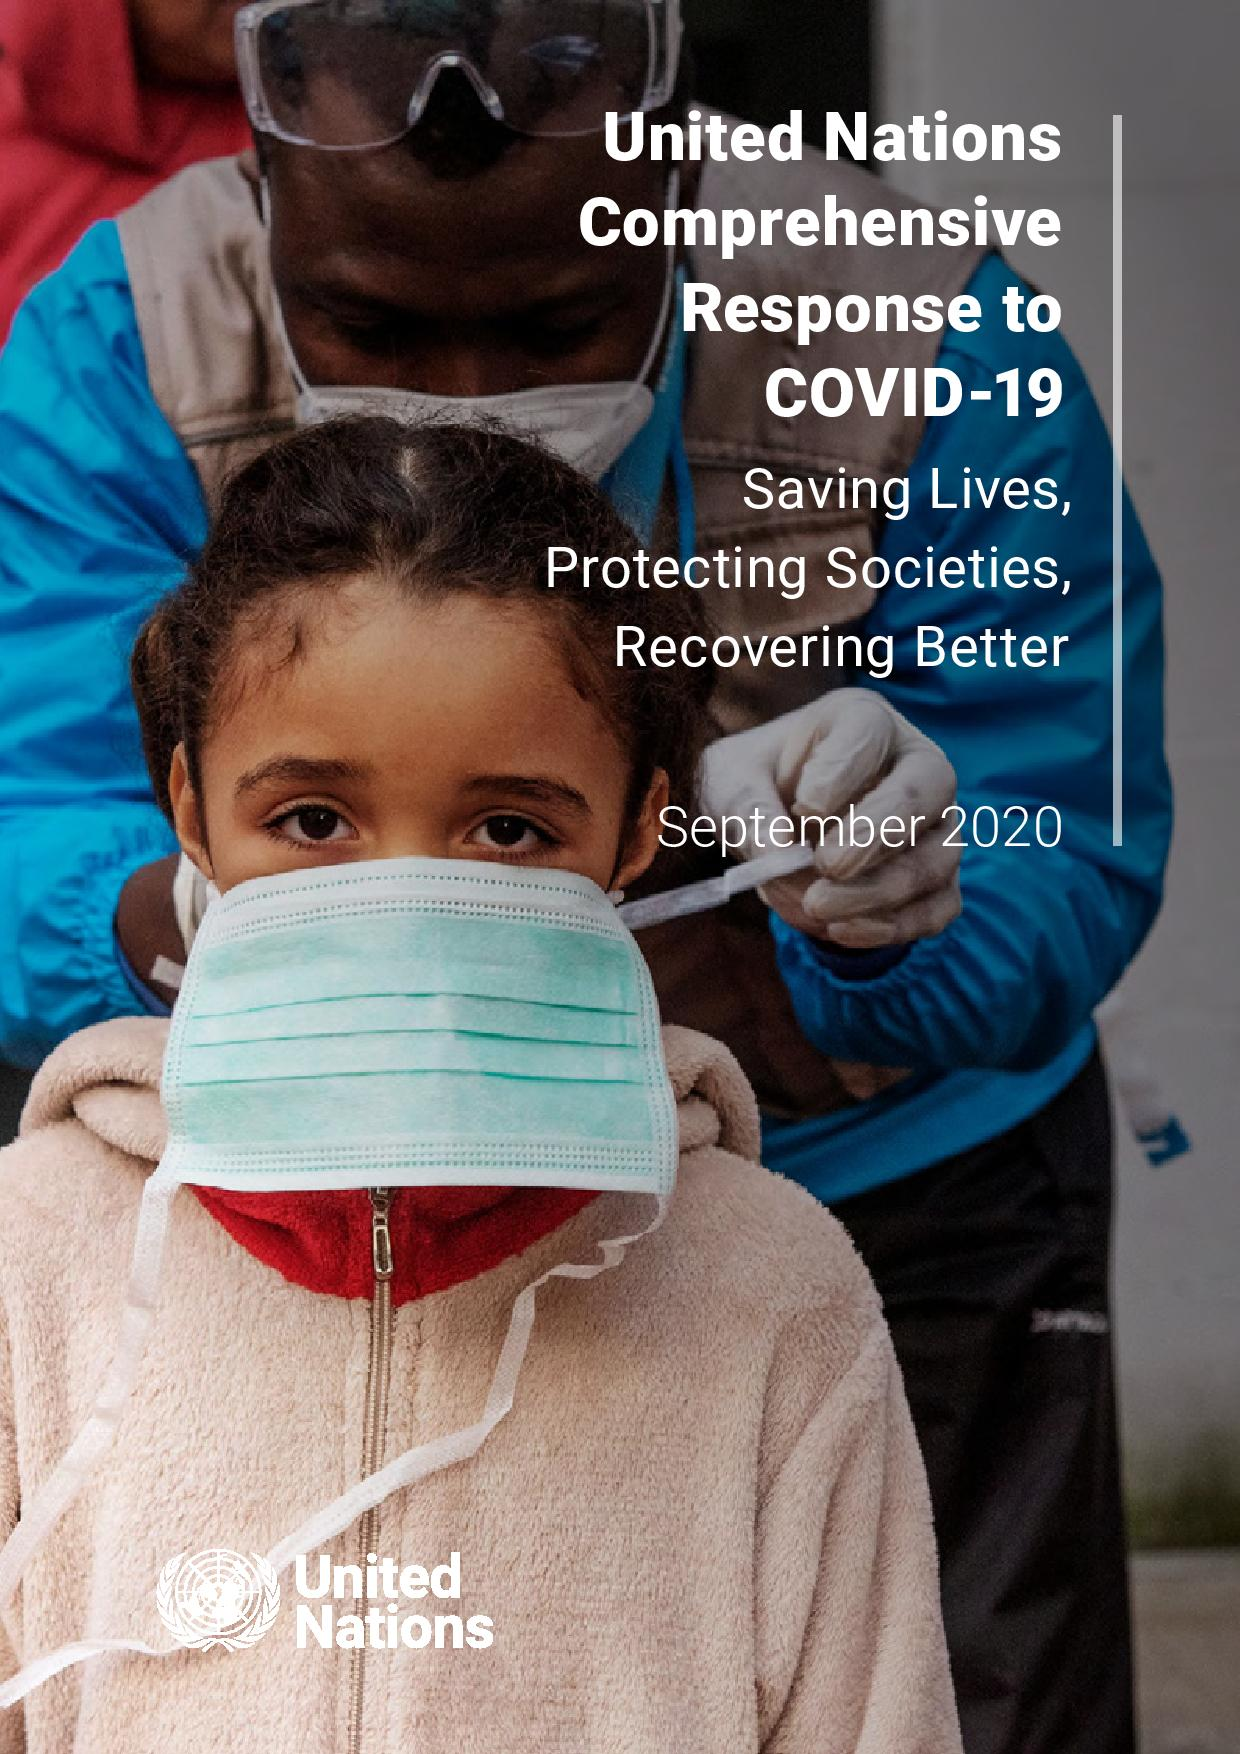 United Nations Comprehensive Response to COVID-19